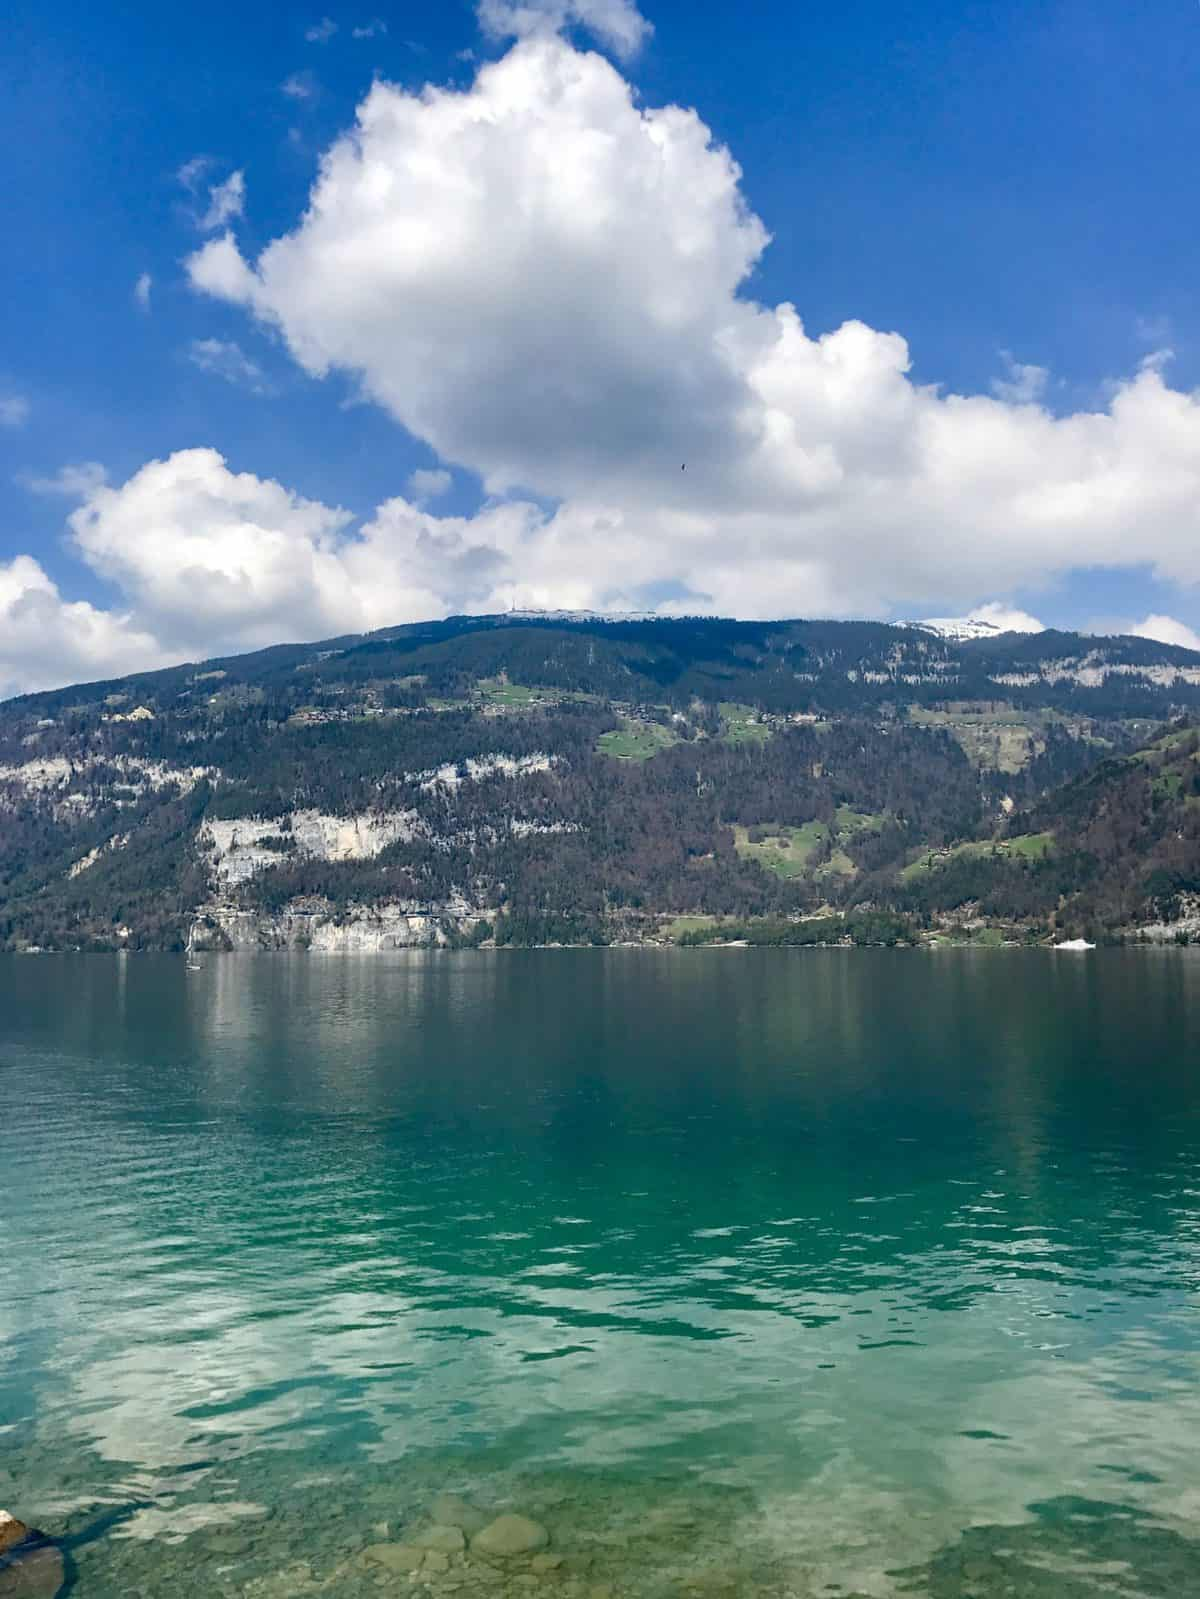 10+ Ideas for Day Trips from Geneva, Switzerland | Whether you're looking for history, culture, food, natural beauty, or adventure, Switzerland's got it all, and Geneva is a perfect base. There are so many things to do in the Lake Geneva area, from the Golden Pass train to Chateau Chillon, charming Luzern to chocolate and cheese tours. What to do in Geneva, Geneva day trip ideas, Switzerland day trips, Switzerland itinerary ideas. #geneva #switzerland #lucerne #chateauchillon